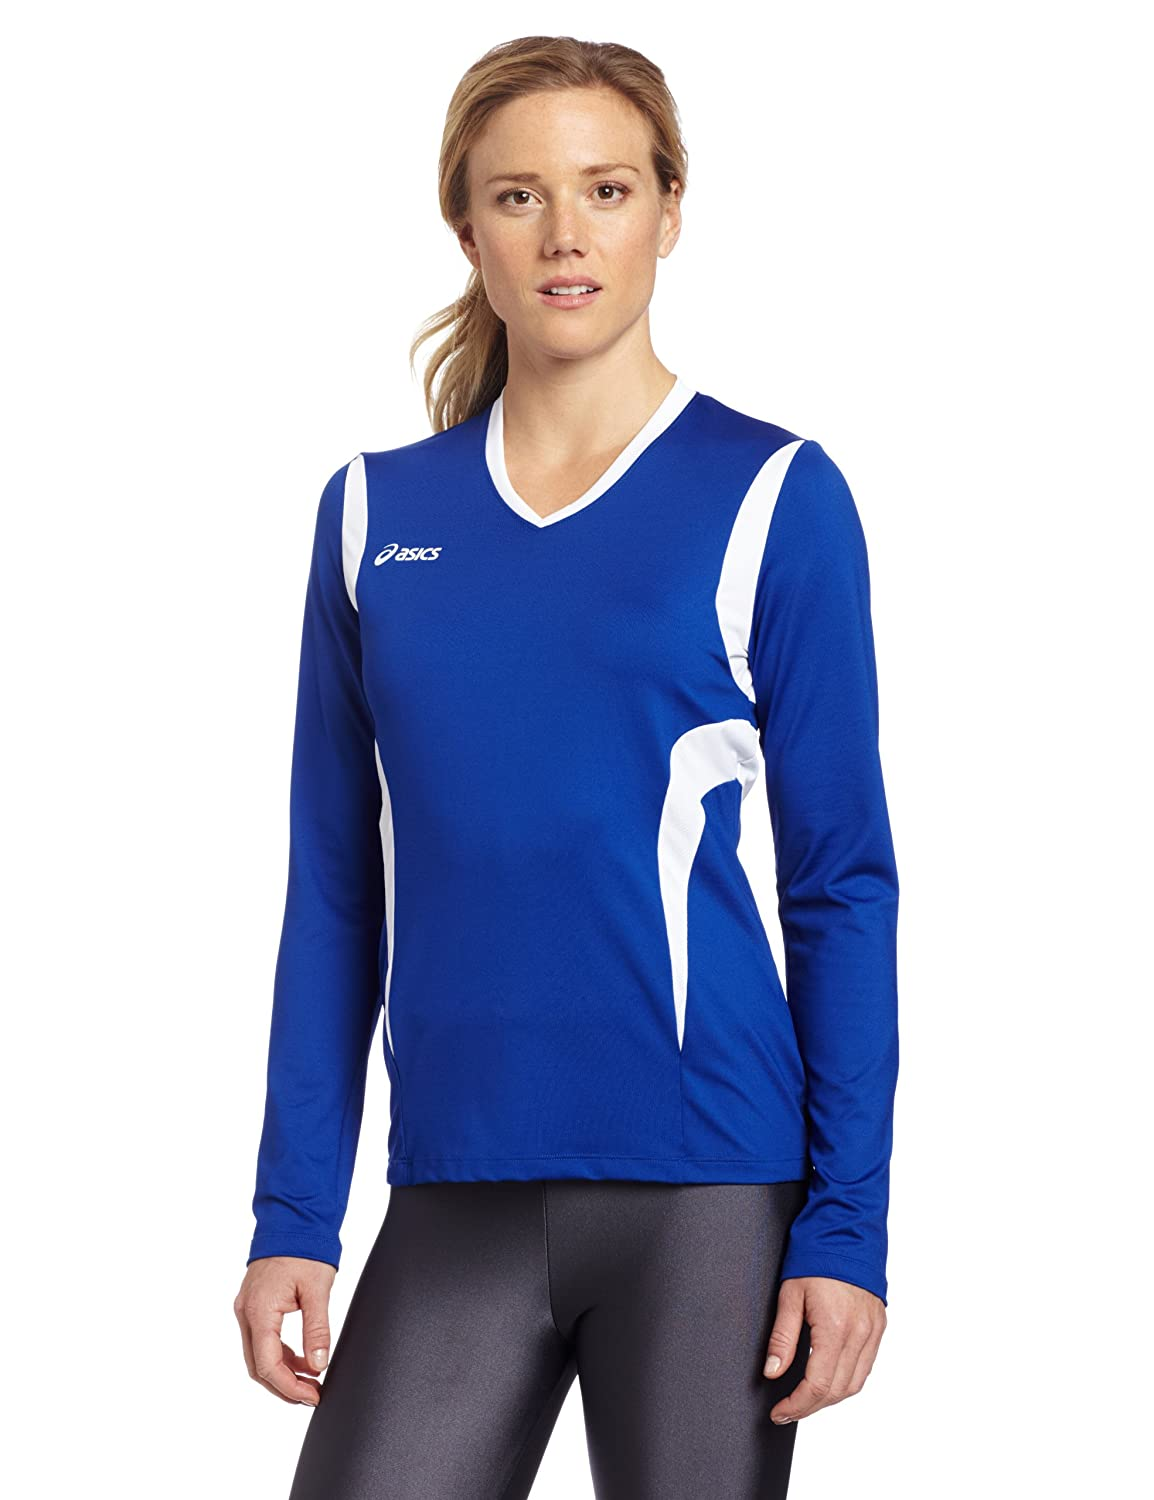 Asics Mintonette Womens Long Sleeve Volleyball Top